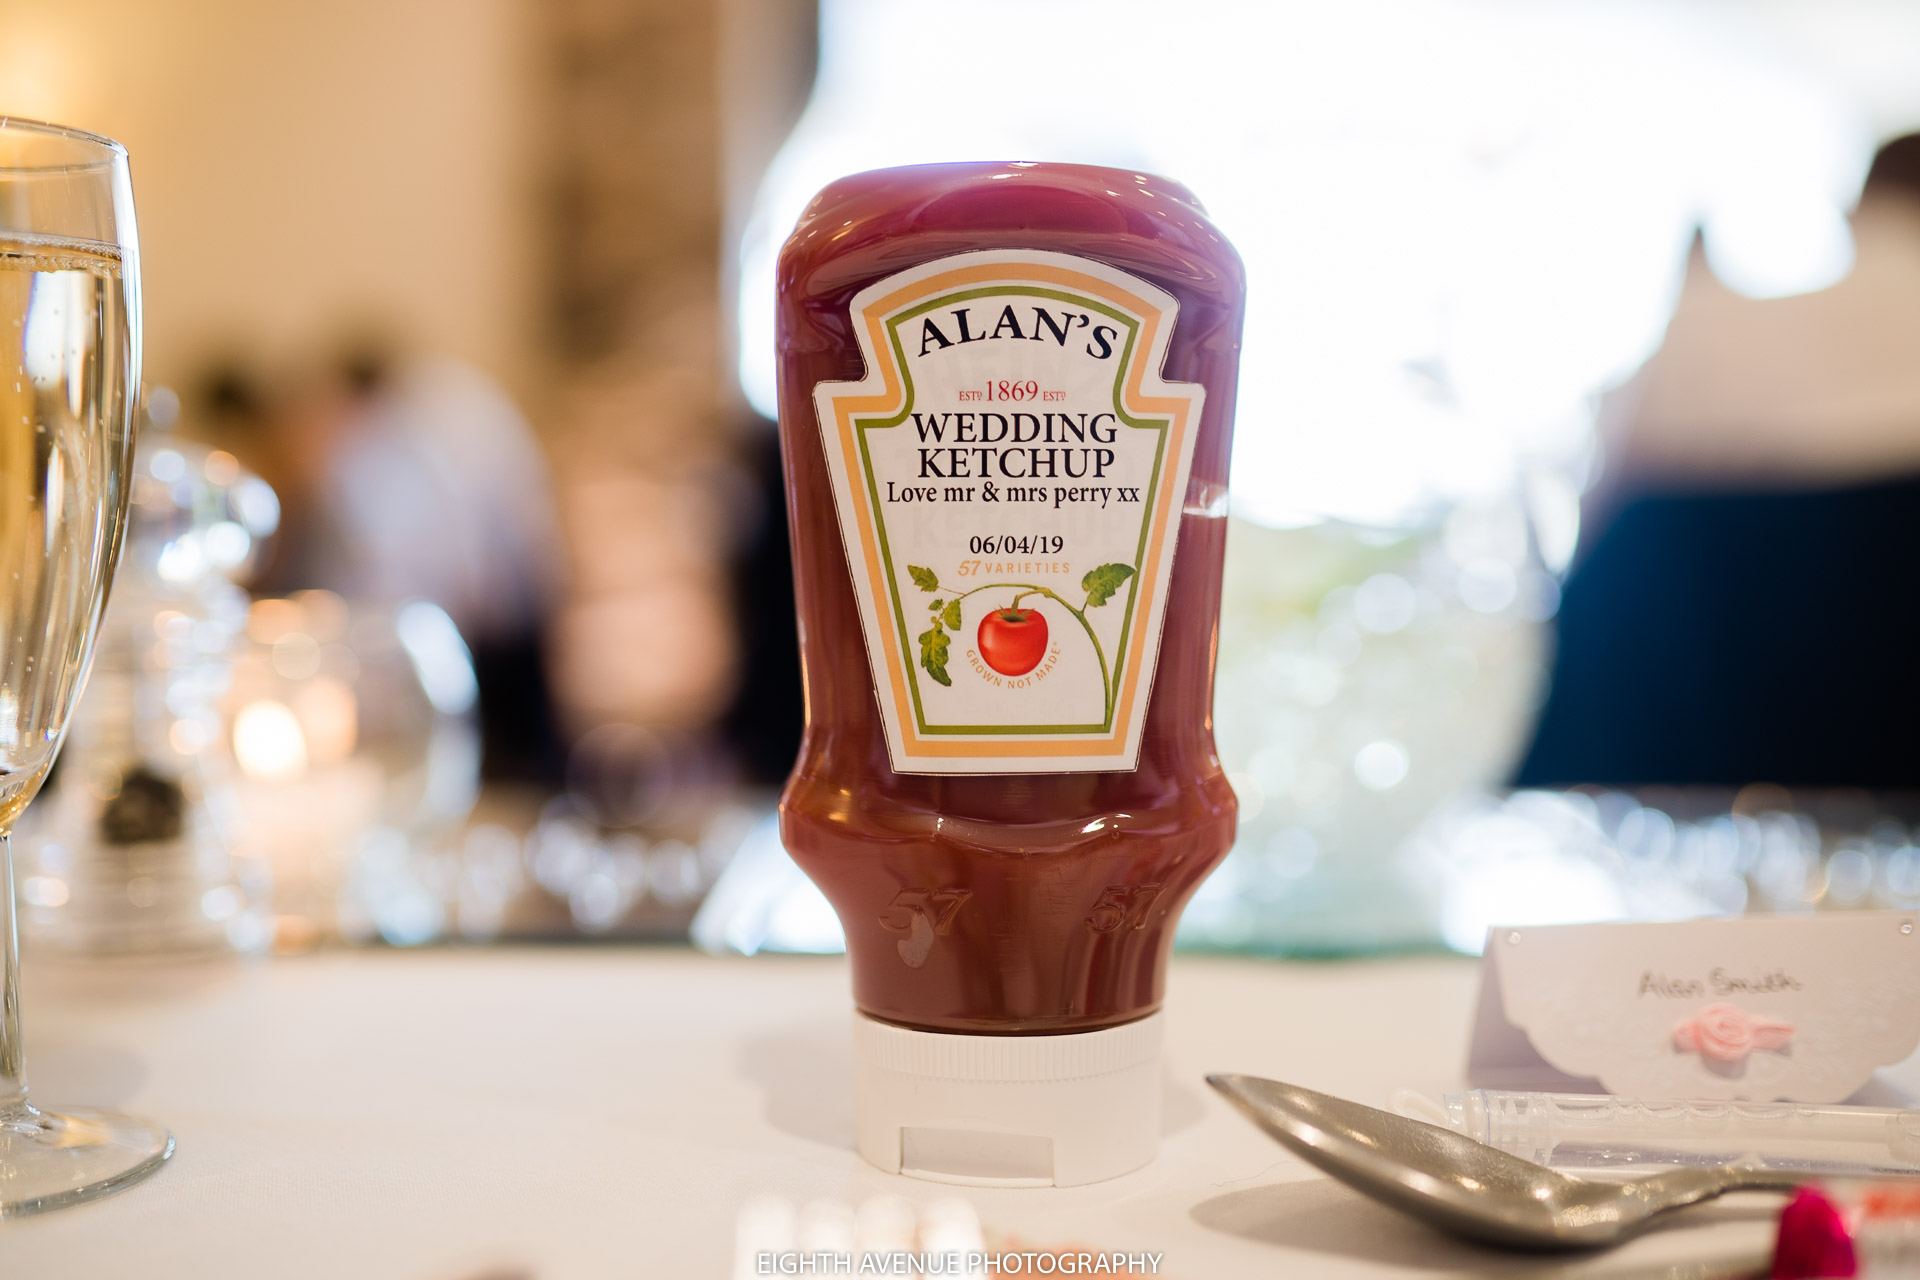 Wedding tomato ketchup